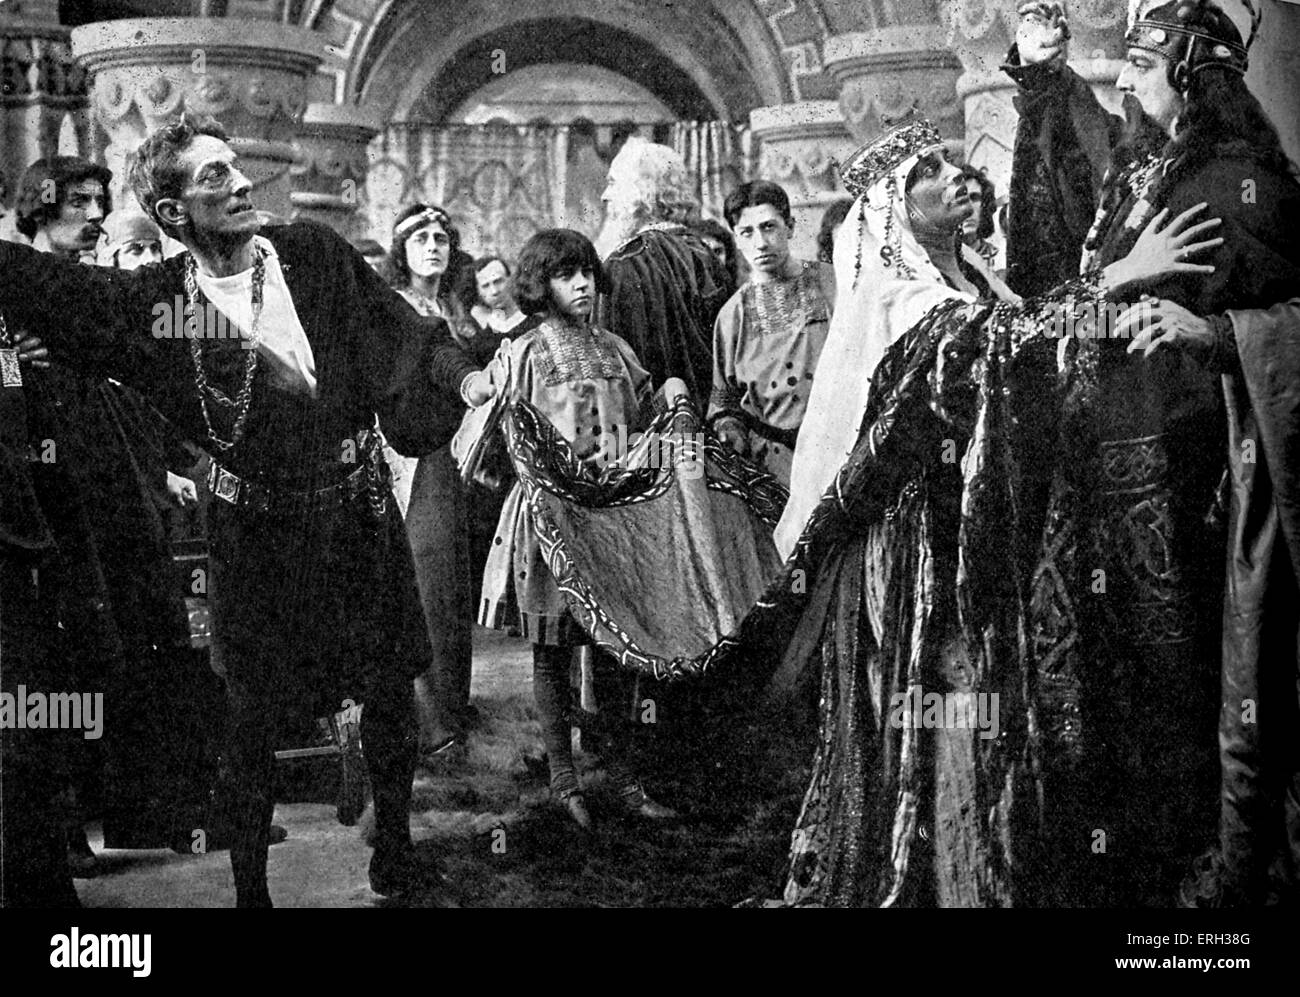 1913 film of Hamlet by William Shakespeare. Still showing Sir J. Forbes-Robertson and Miss Gertrude Elliott and - Stock Image